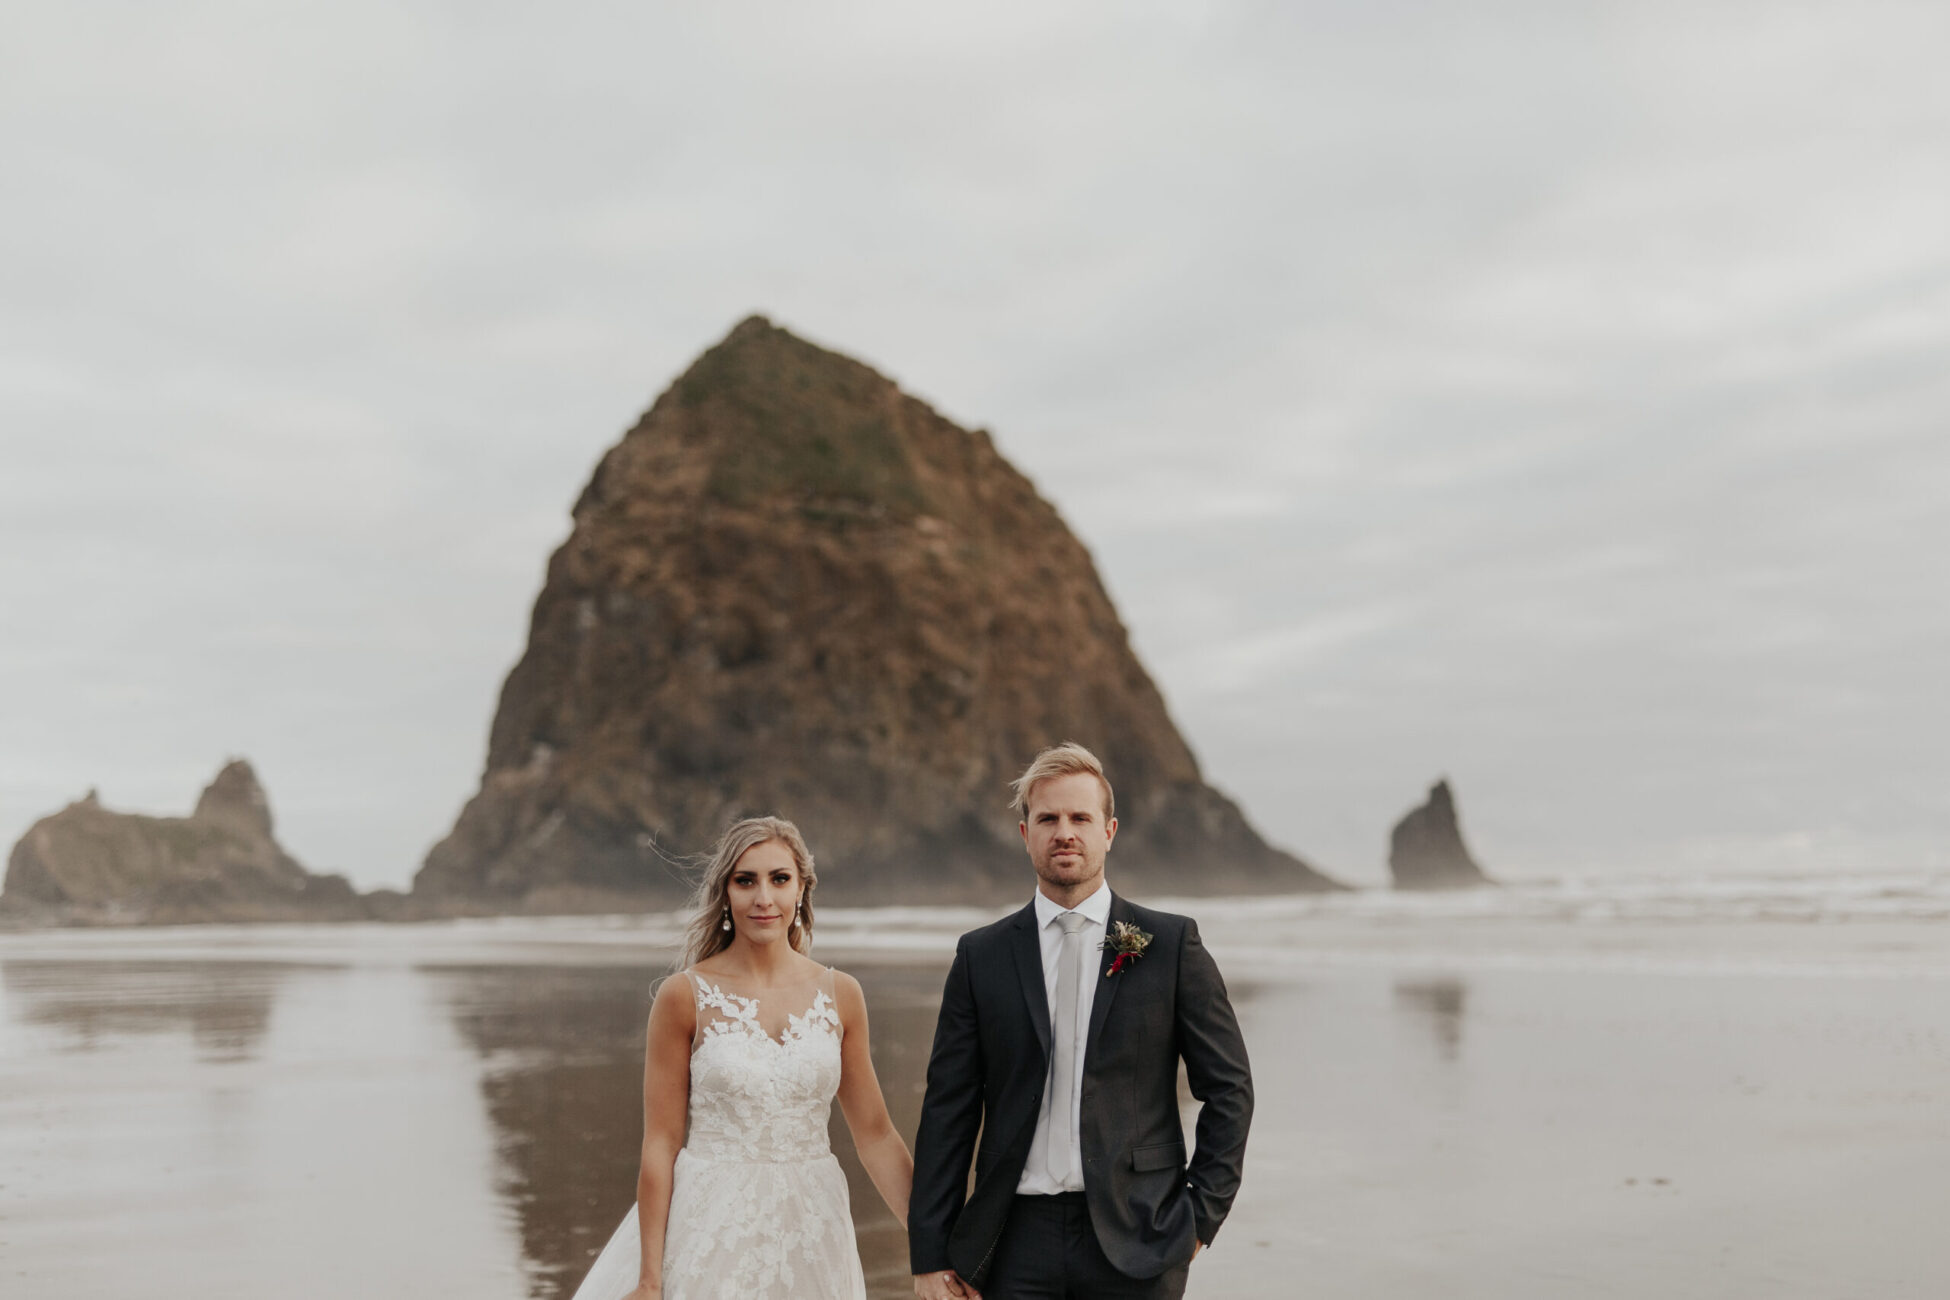 Cannon beach elopement. Elopement photographer.